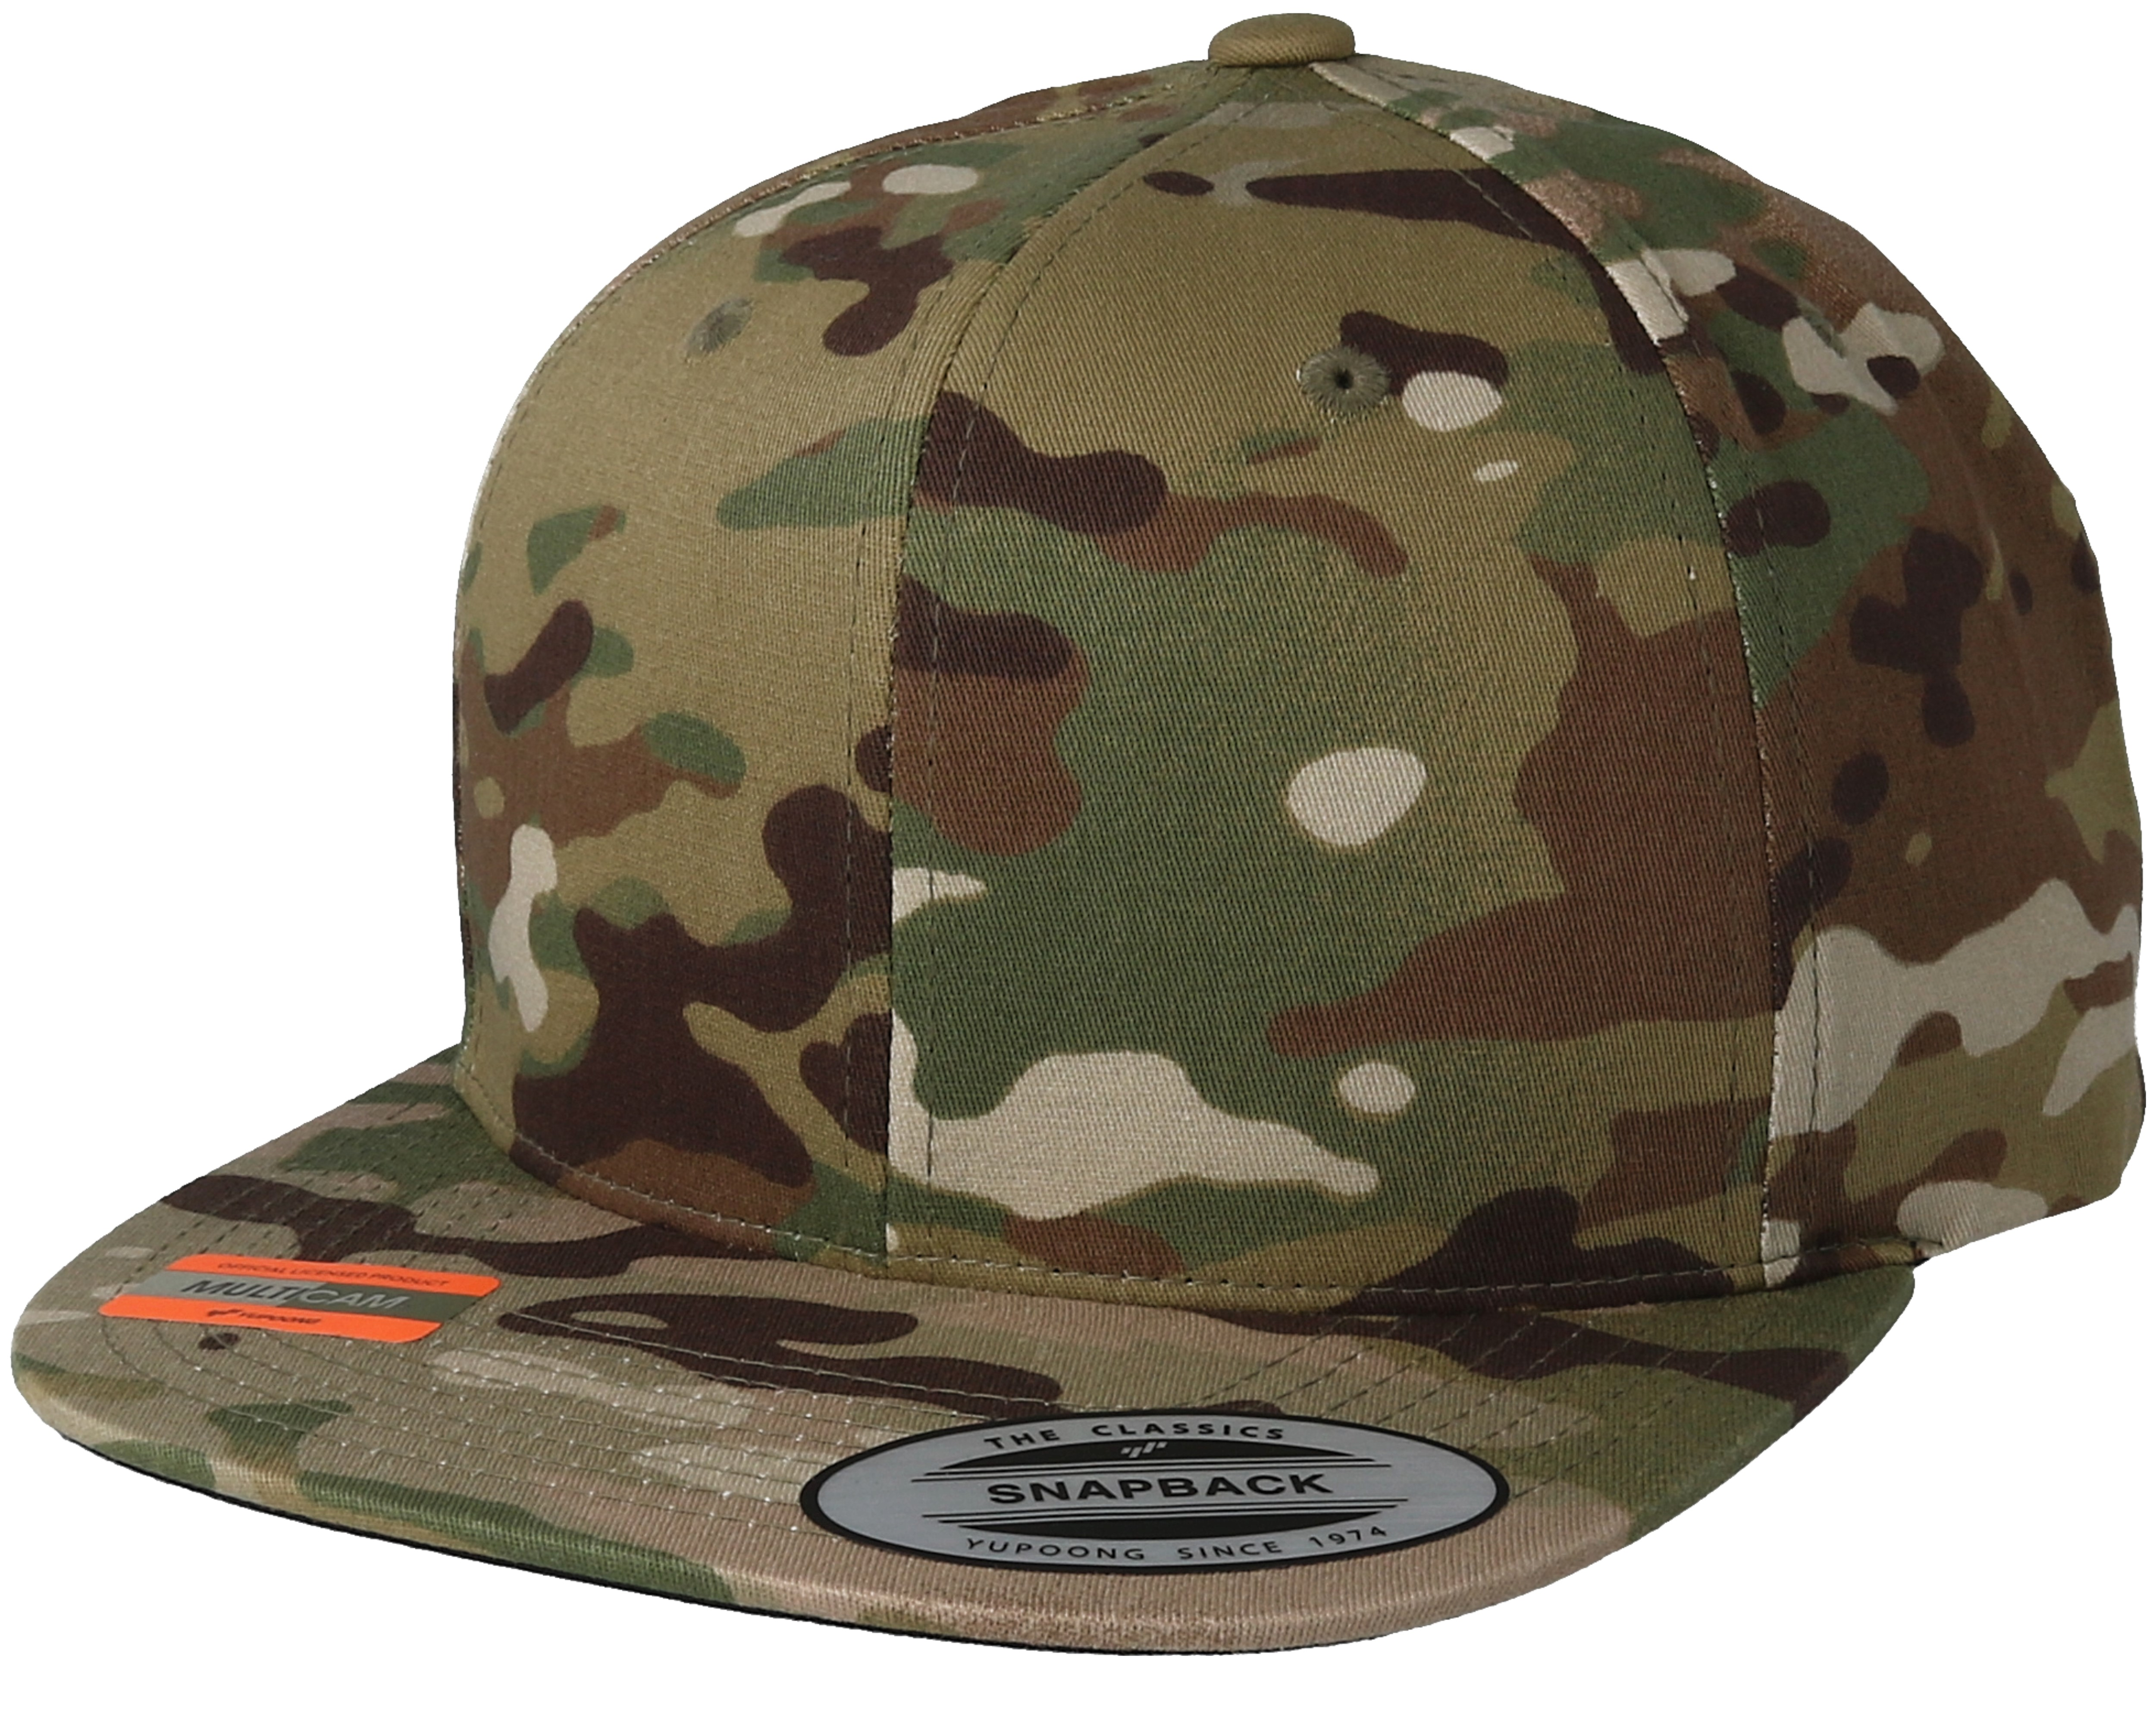 a723a8840f7 Product information Multicam Snapback - Yupoong